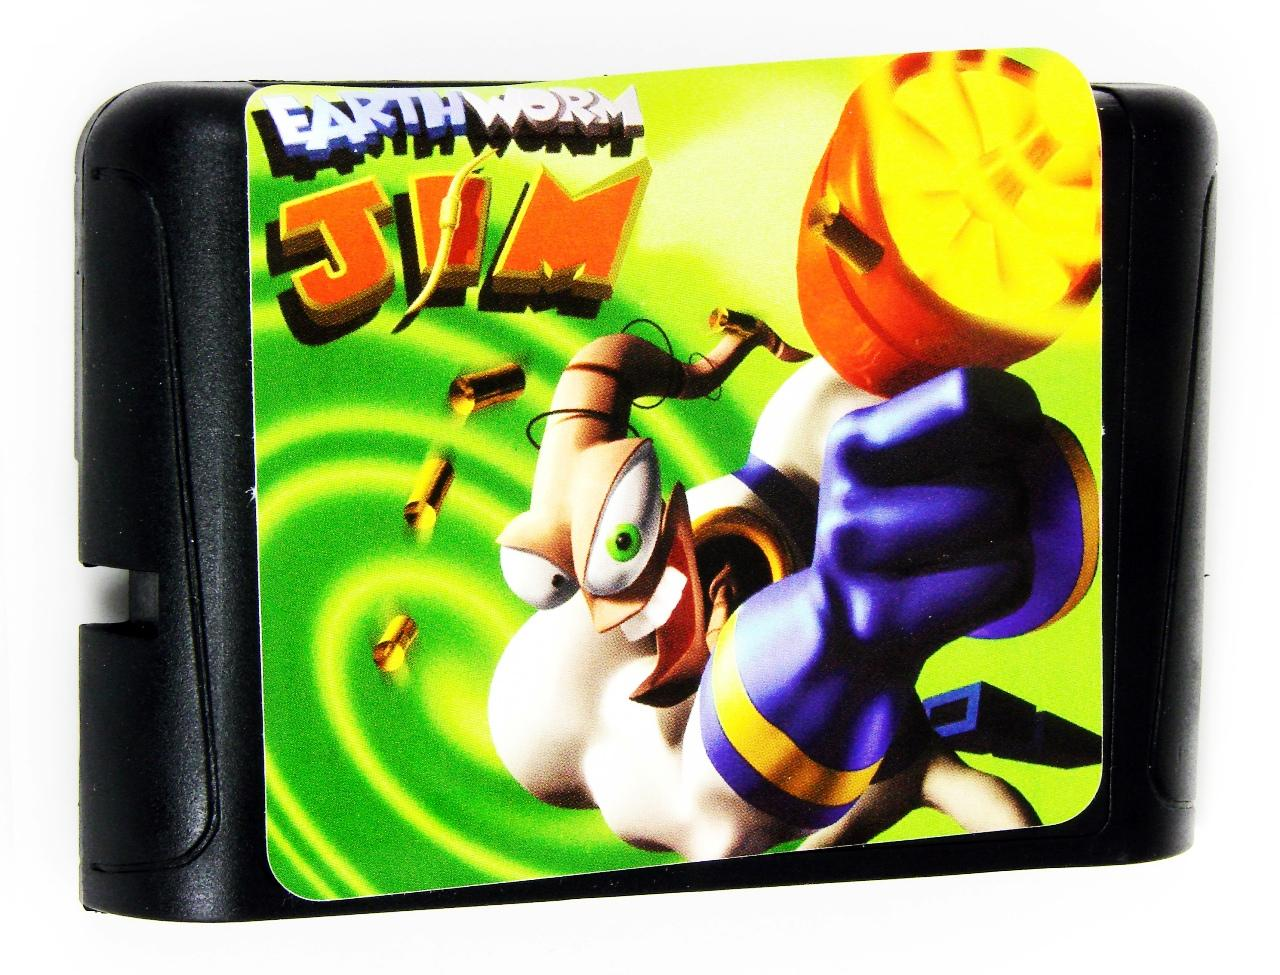 Earth Worm JIM (Sega)